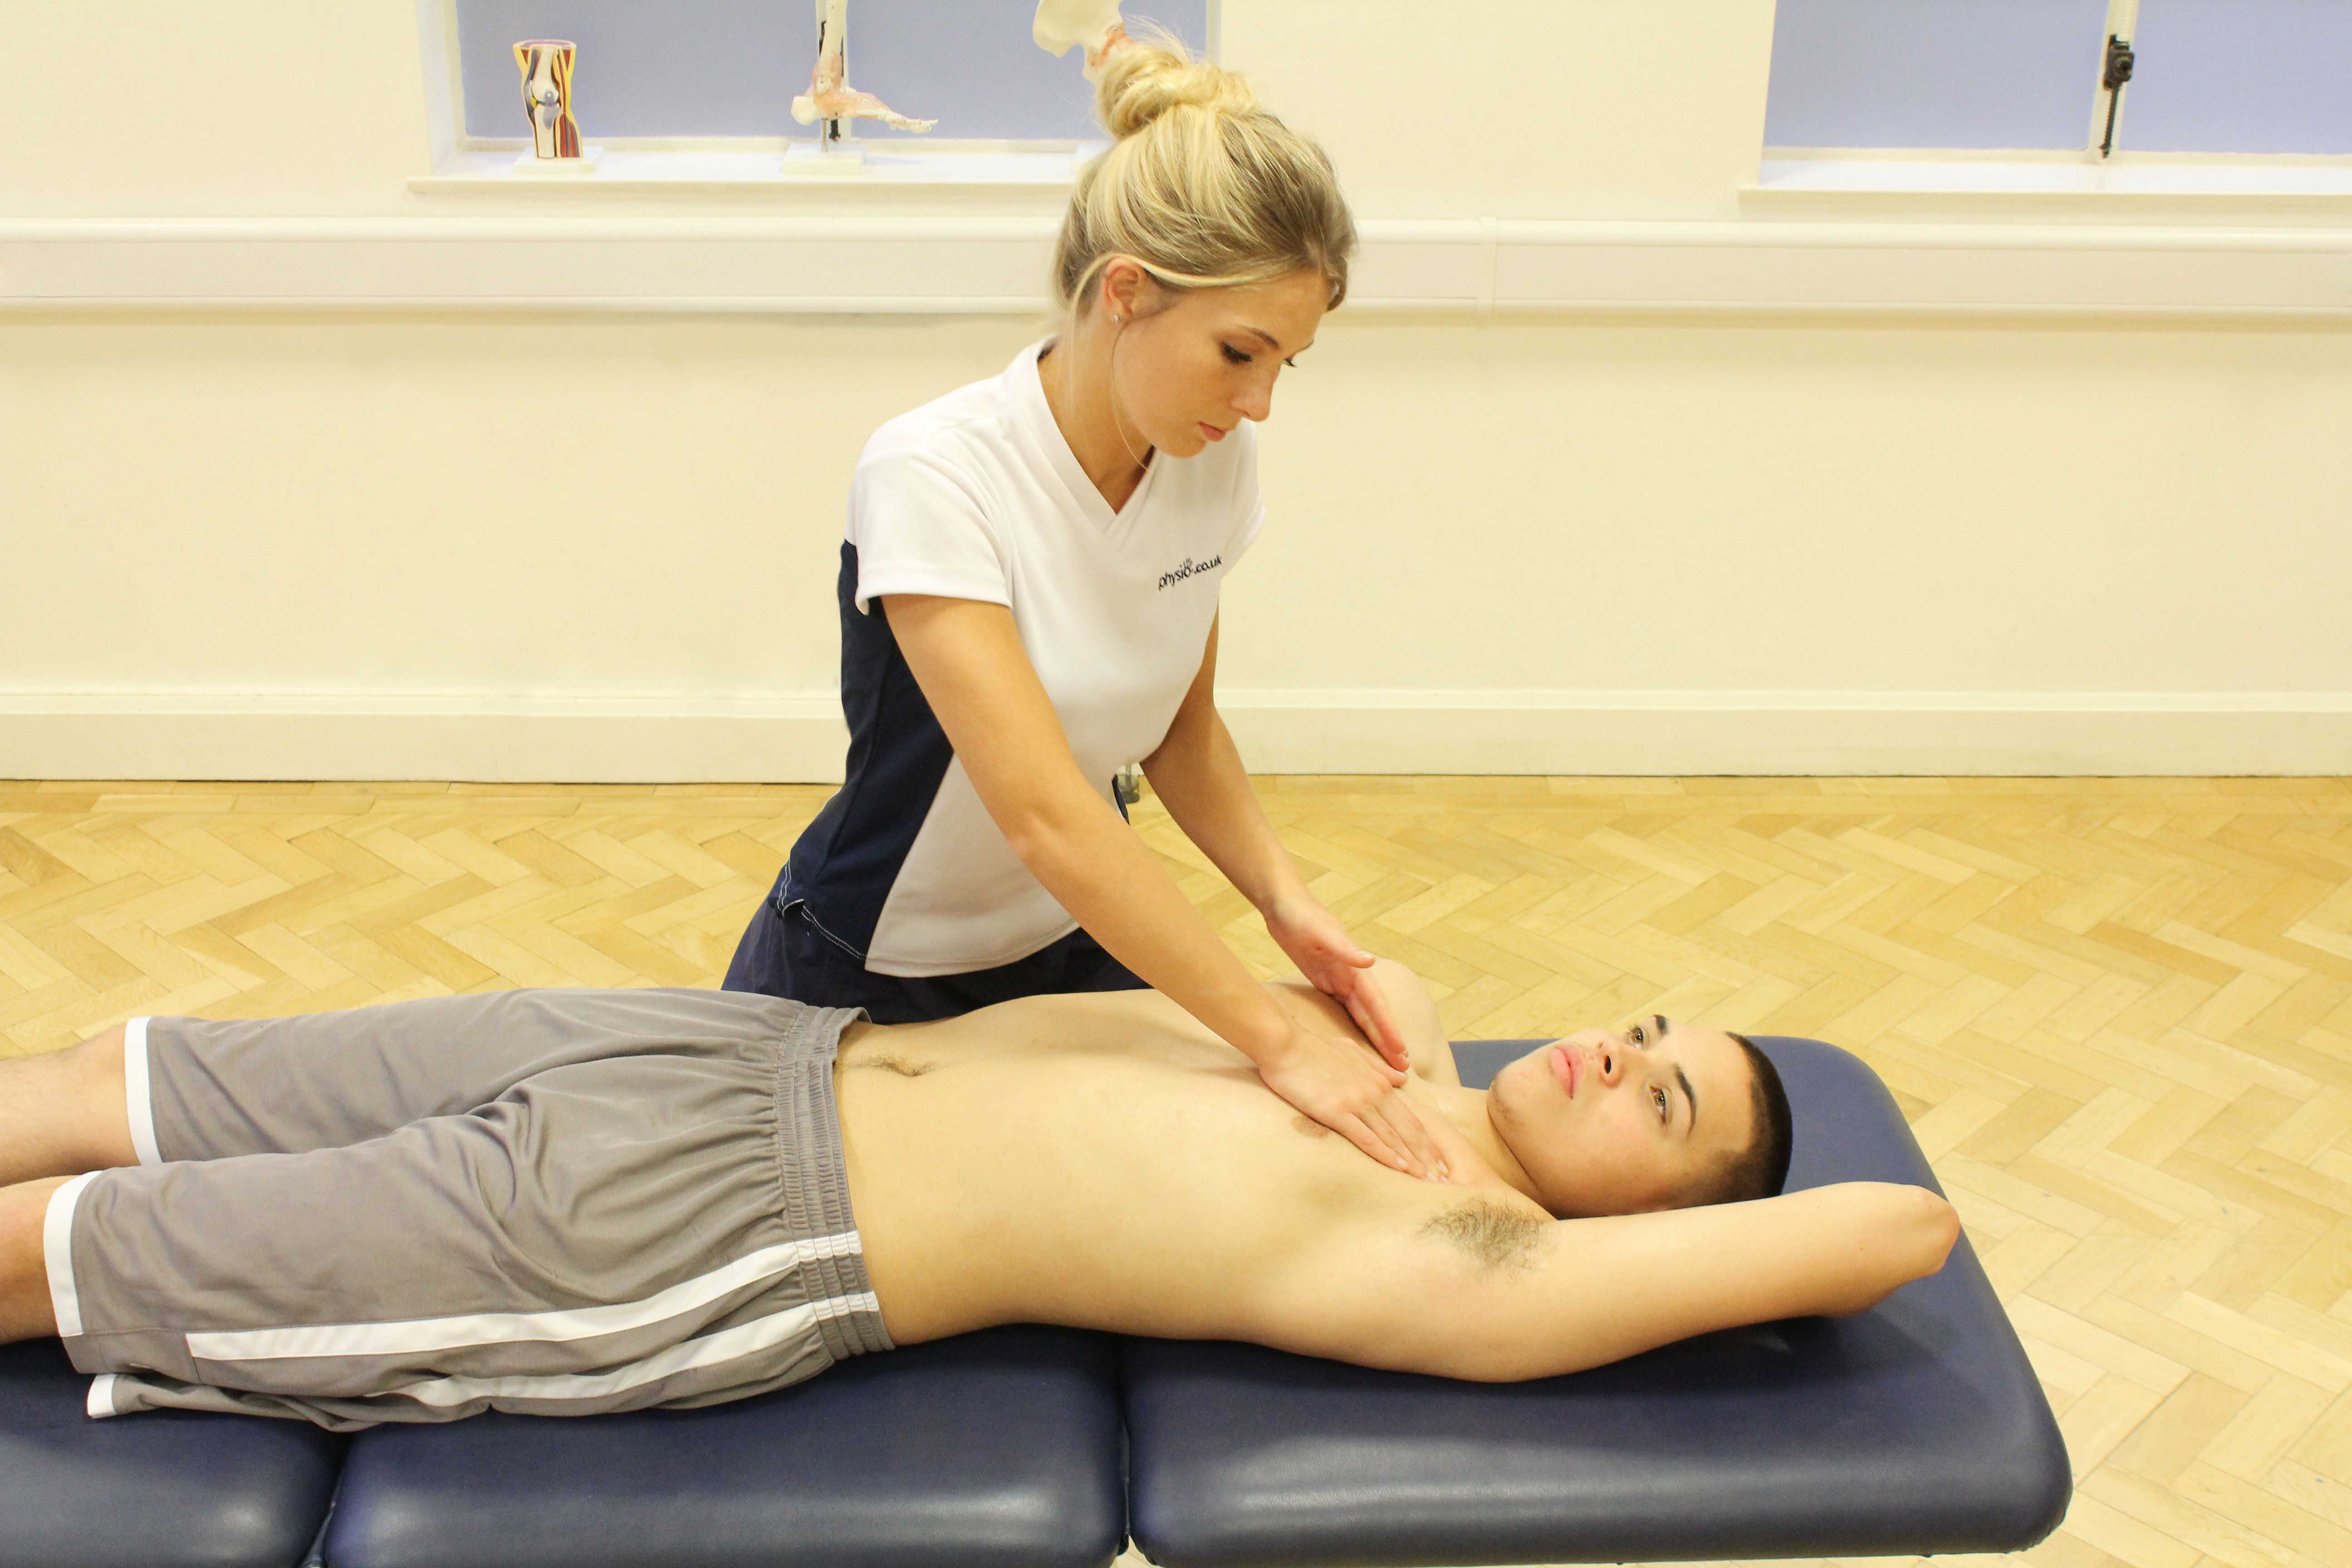 Soft tissue massage of the chest muscle and connective tissues by specialist MSK therapist